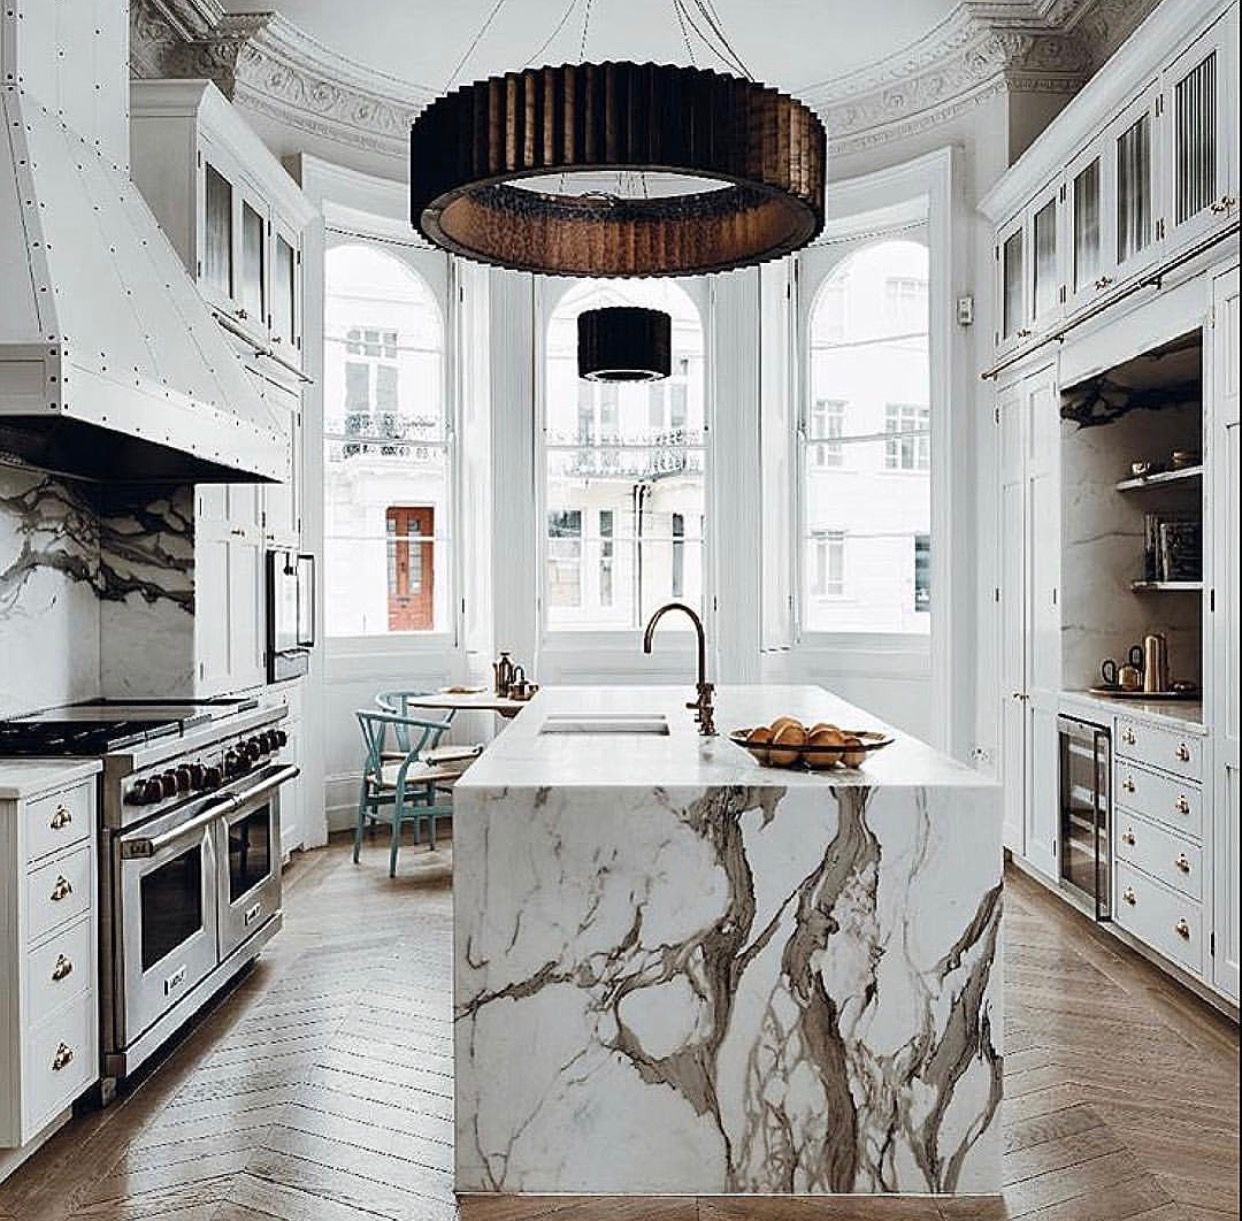 stunning marble and overhead light fixture kitchens id like to